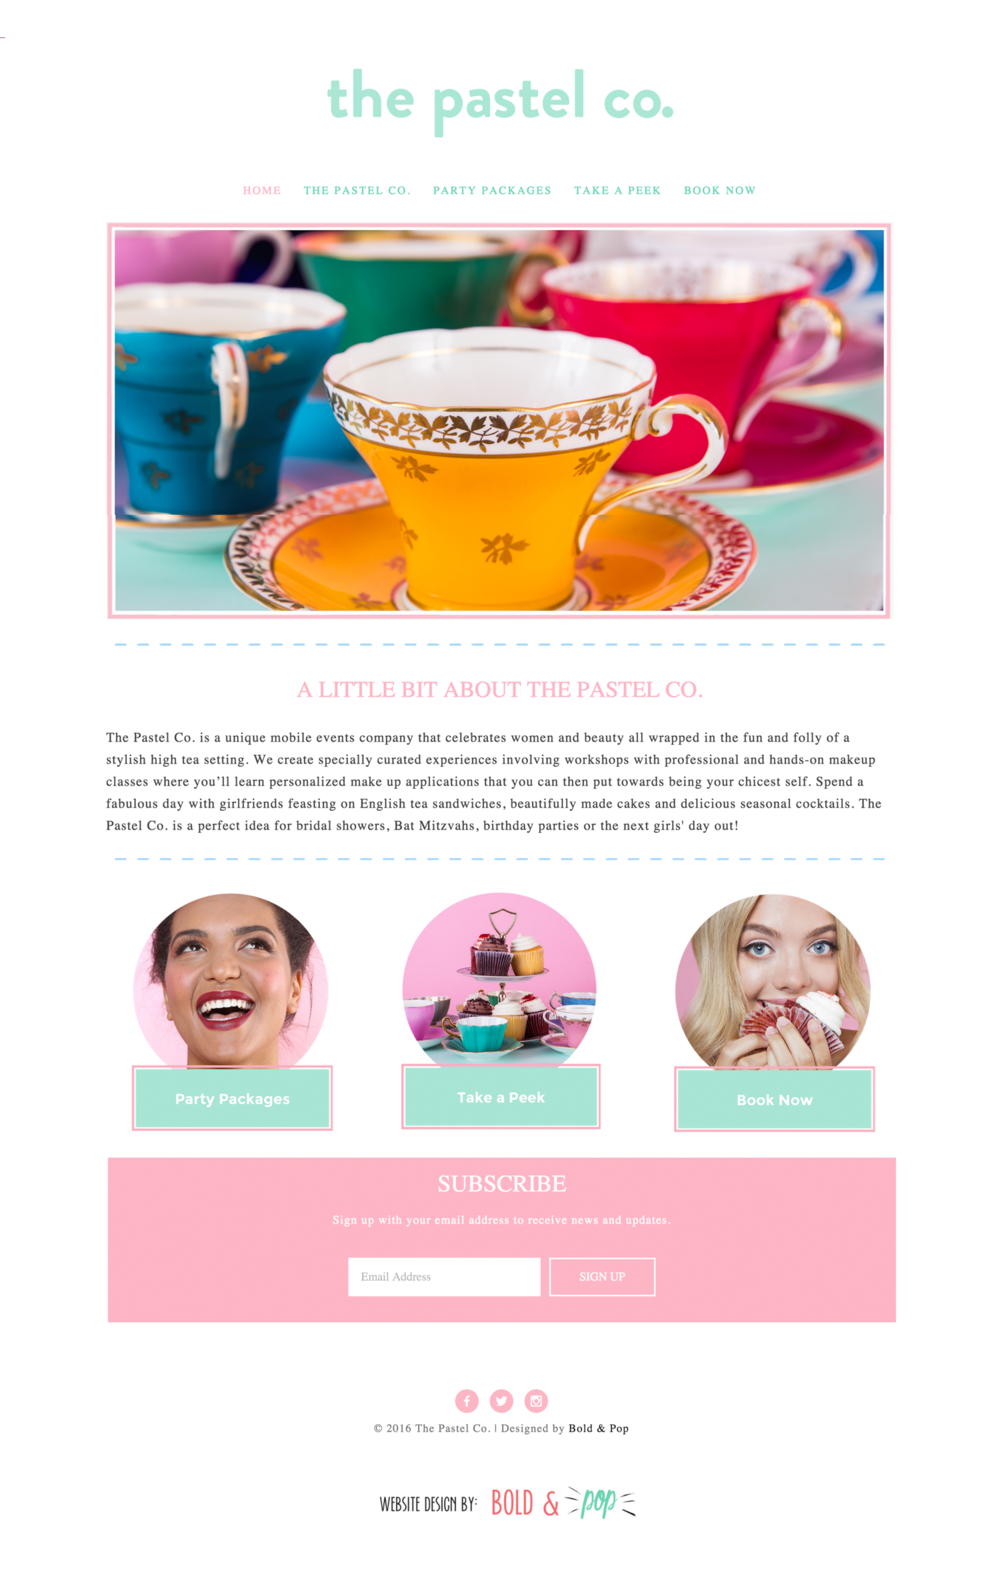 Bold & Pop : The Pastel Co Website Design